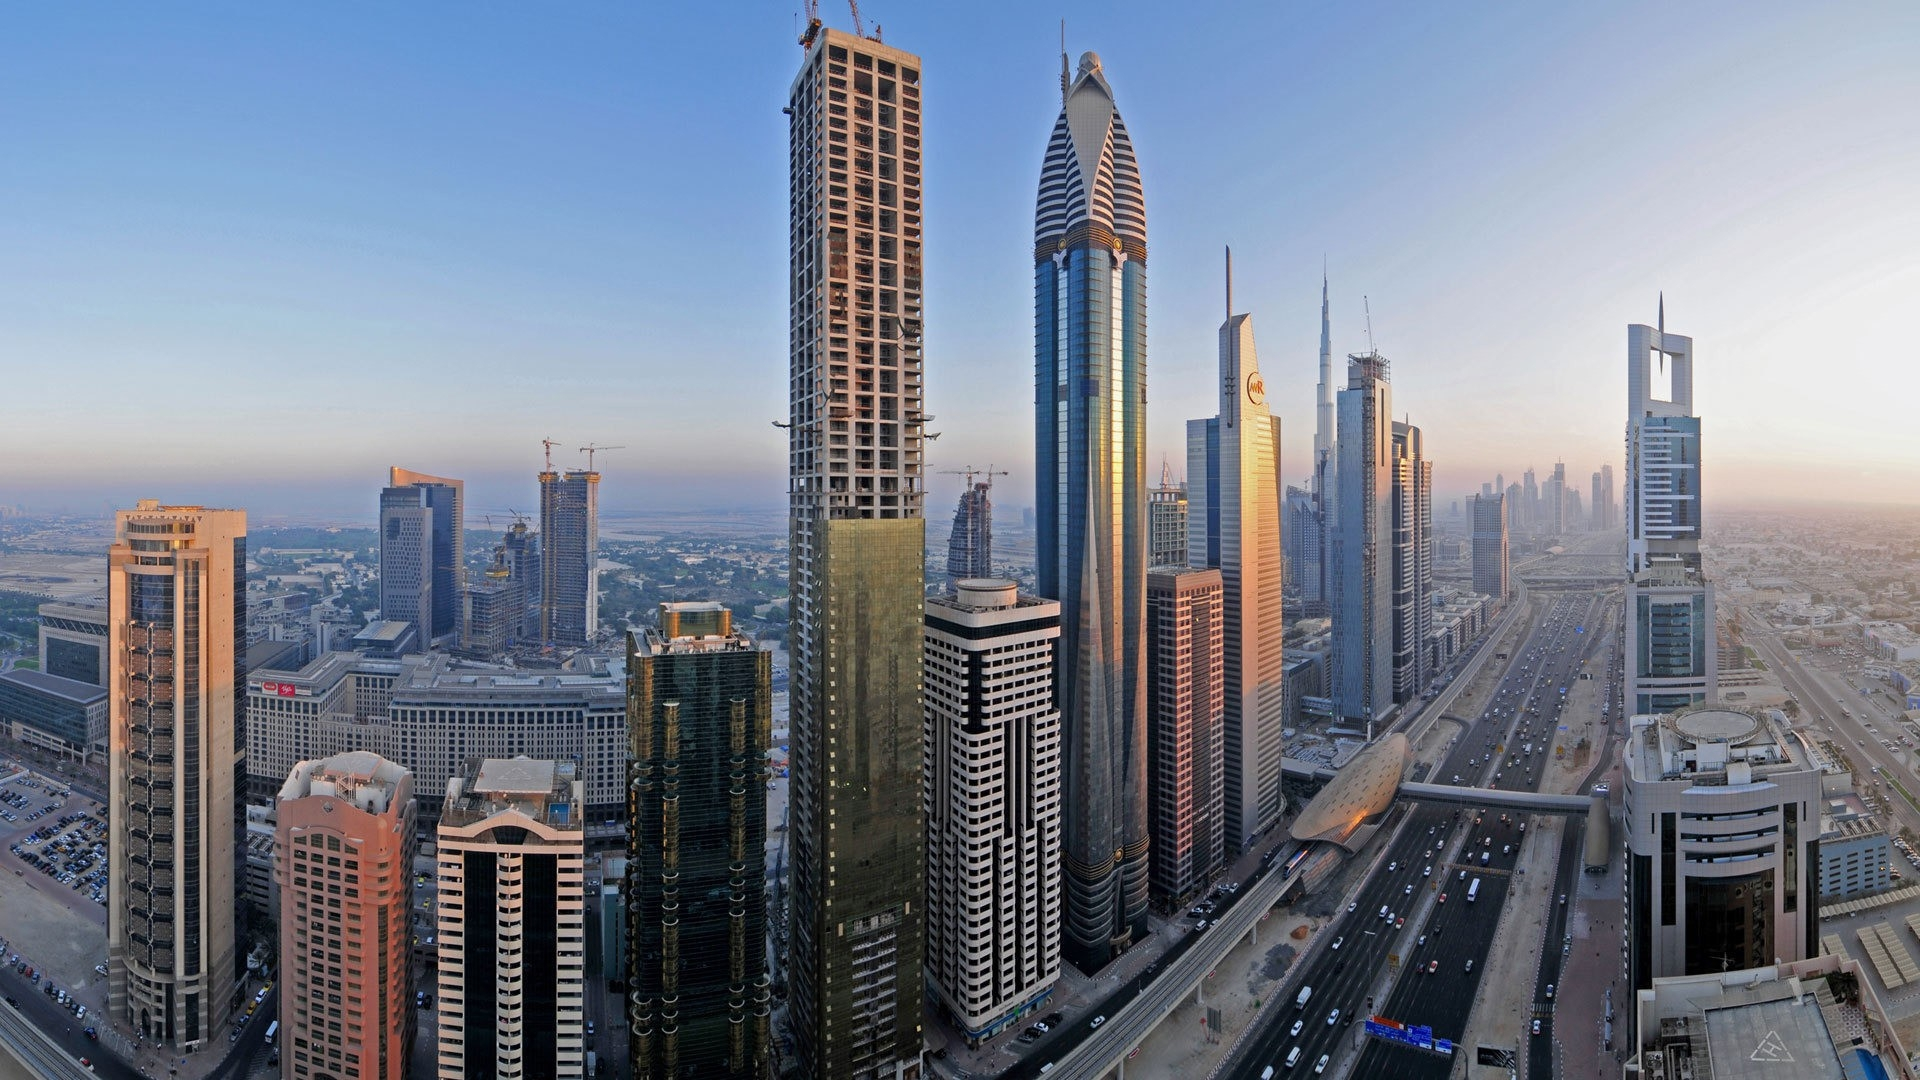 download wallpaper 1920x1080 cityscapes, dubai, united arab emirates